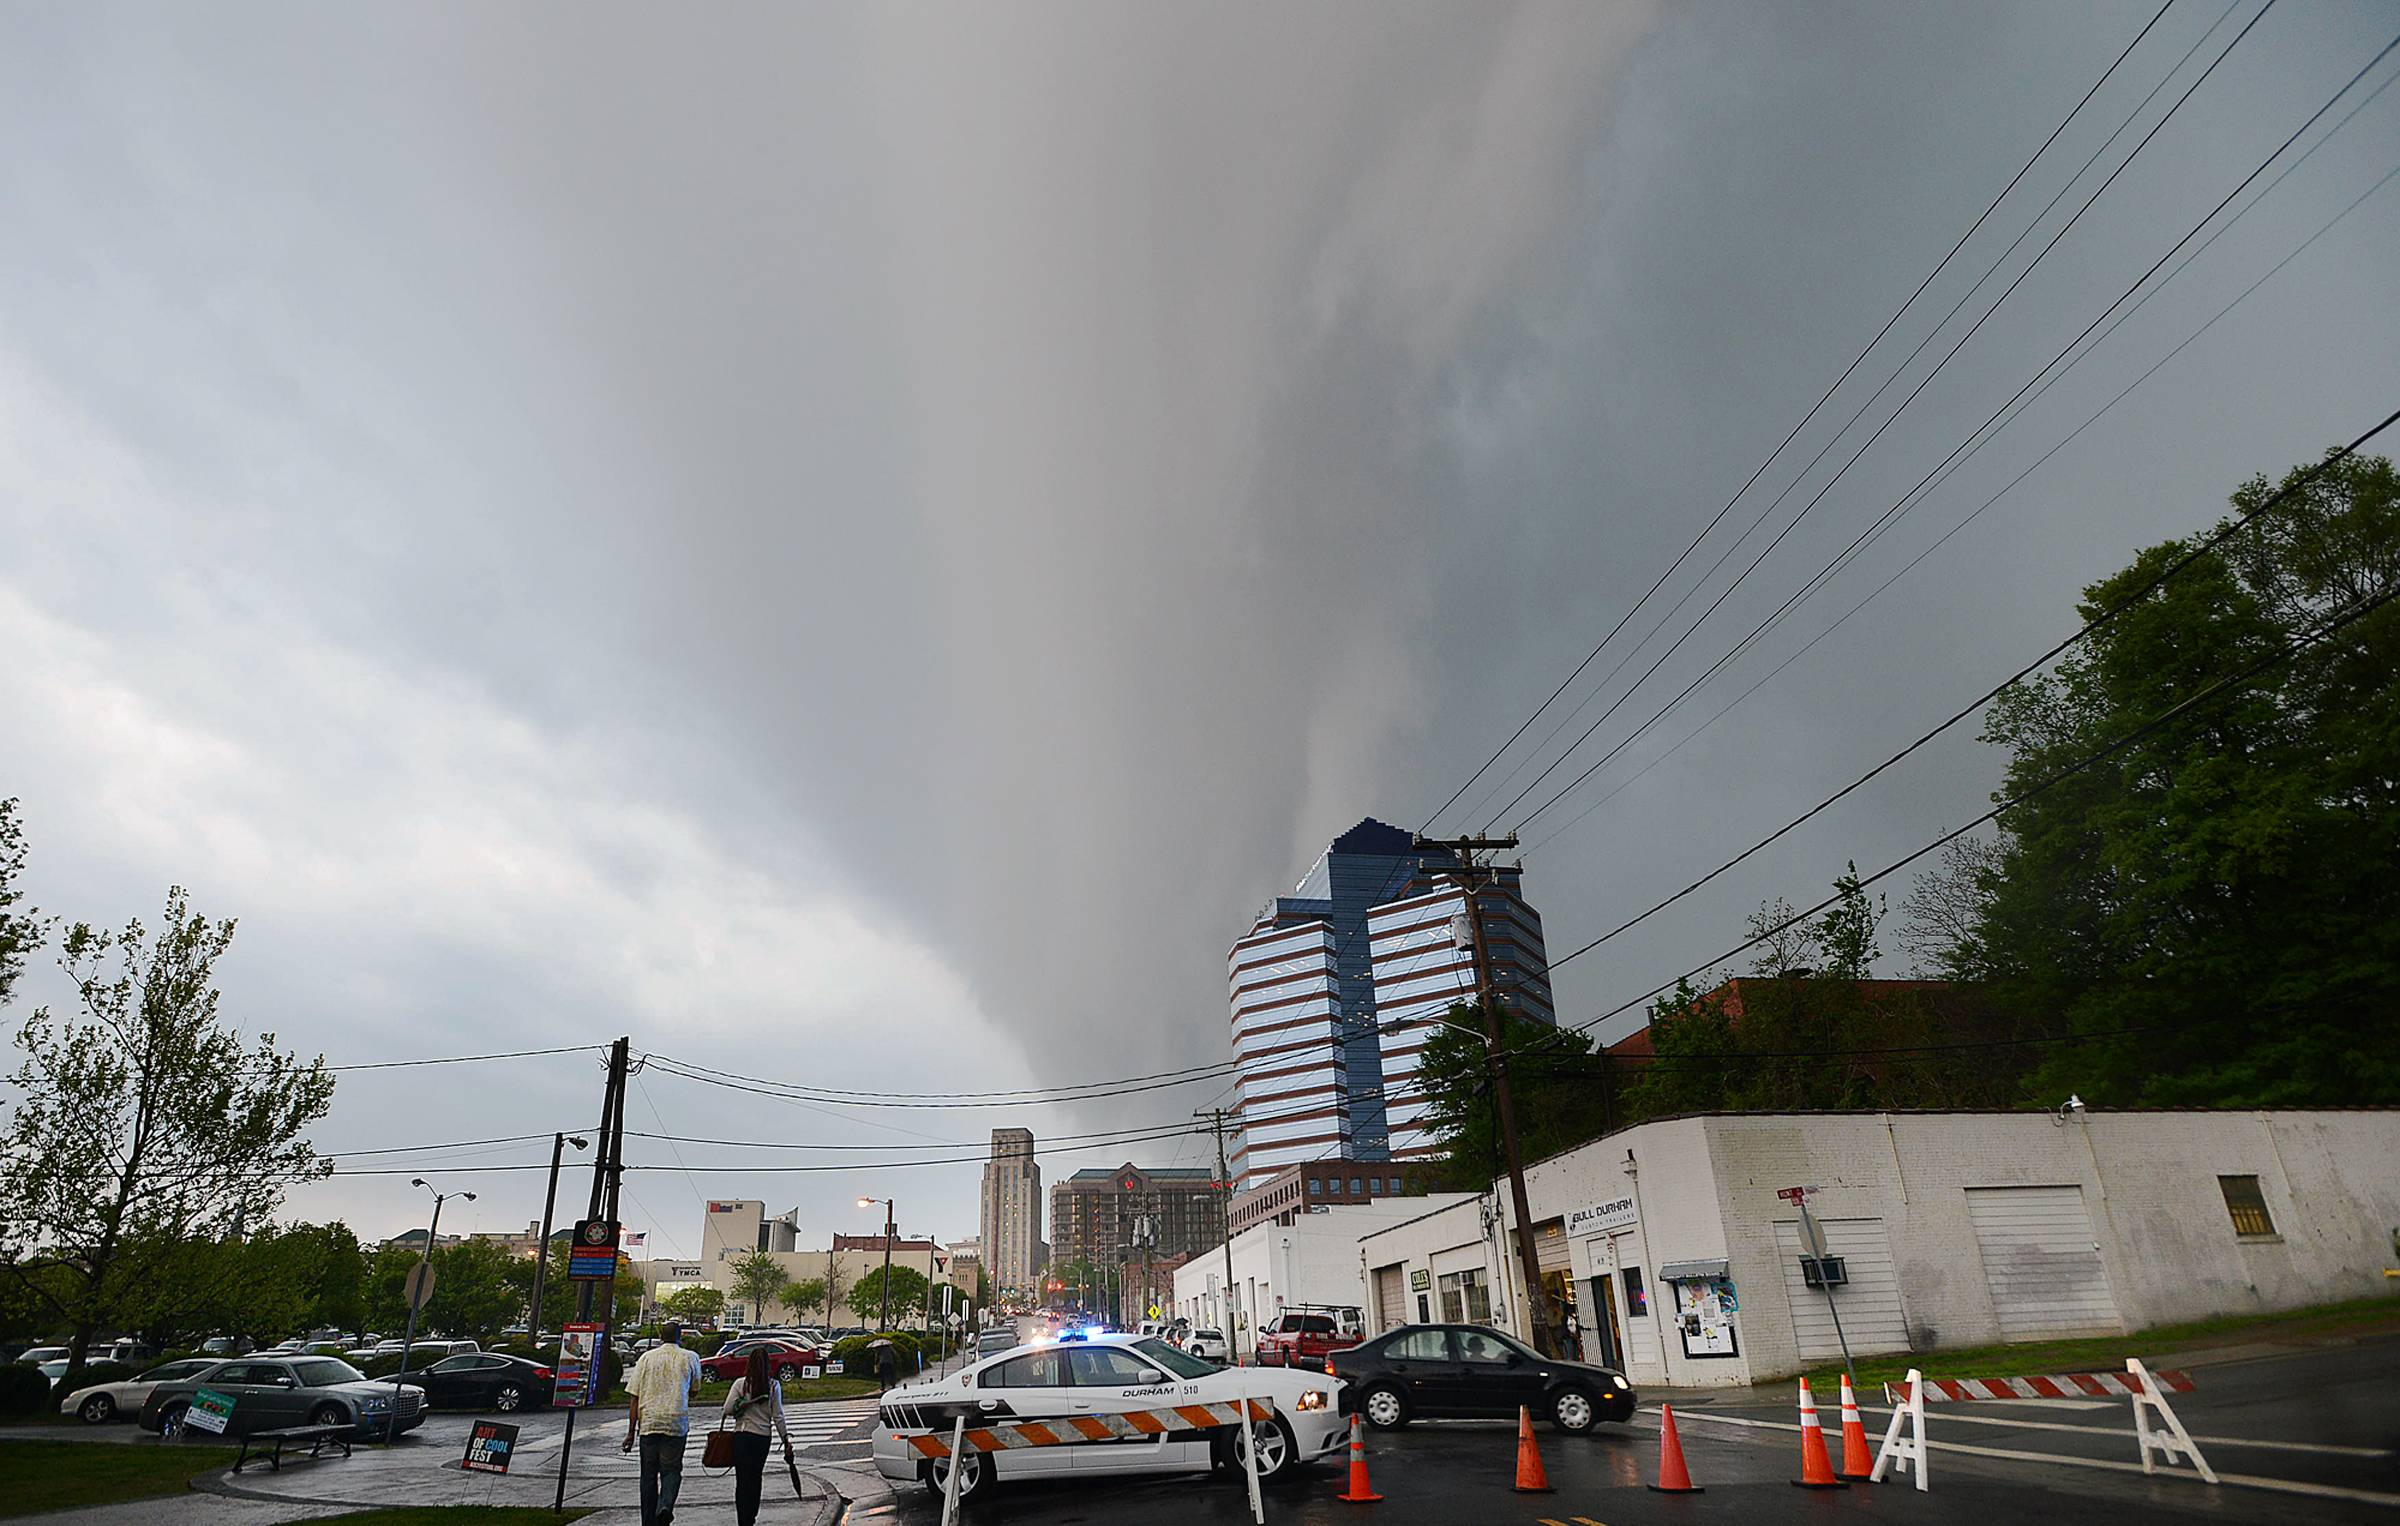 Menacing dark clouds brought rain, wind and lightning above downtown Durham North Carolina as cold and warm fronts clashed, making a dangerous weather situation.